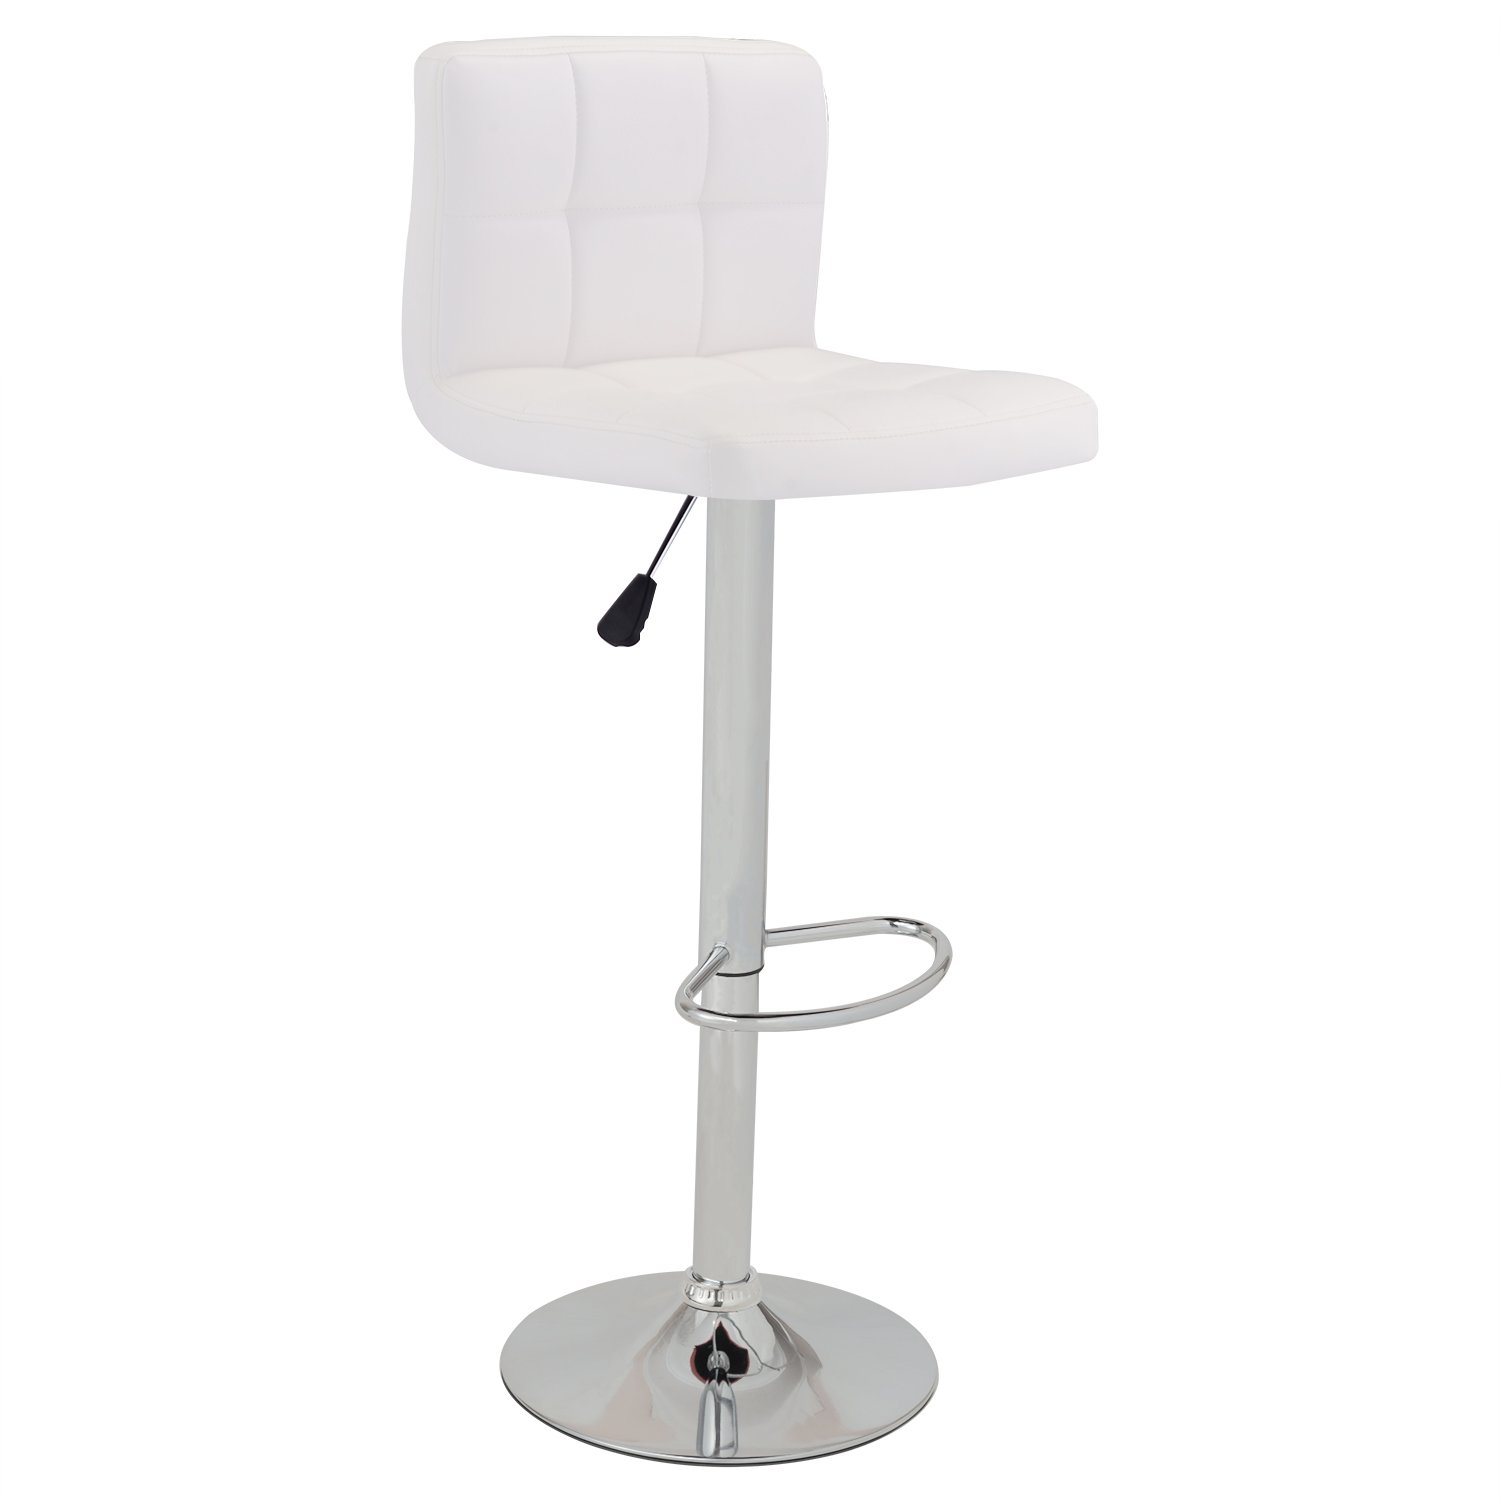 GentleShower Barstools, Modern Square Shape Swivel Bar Stool Bistro Chair PU Leather Adjustable Hydraulic Pub Chair Counter Barstool with Backrest, 1 Pcs White